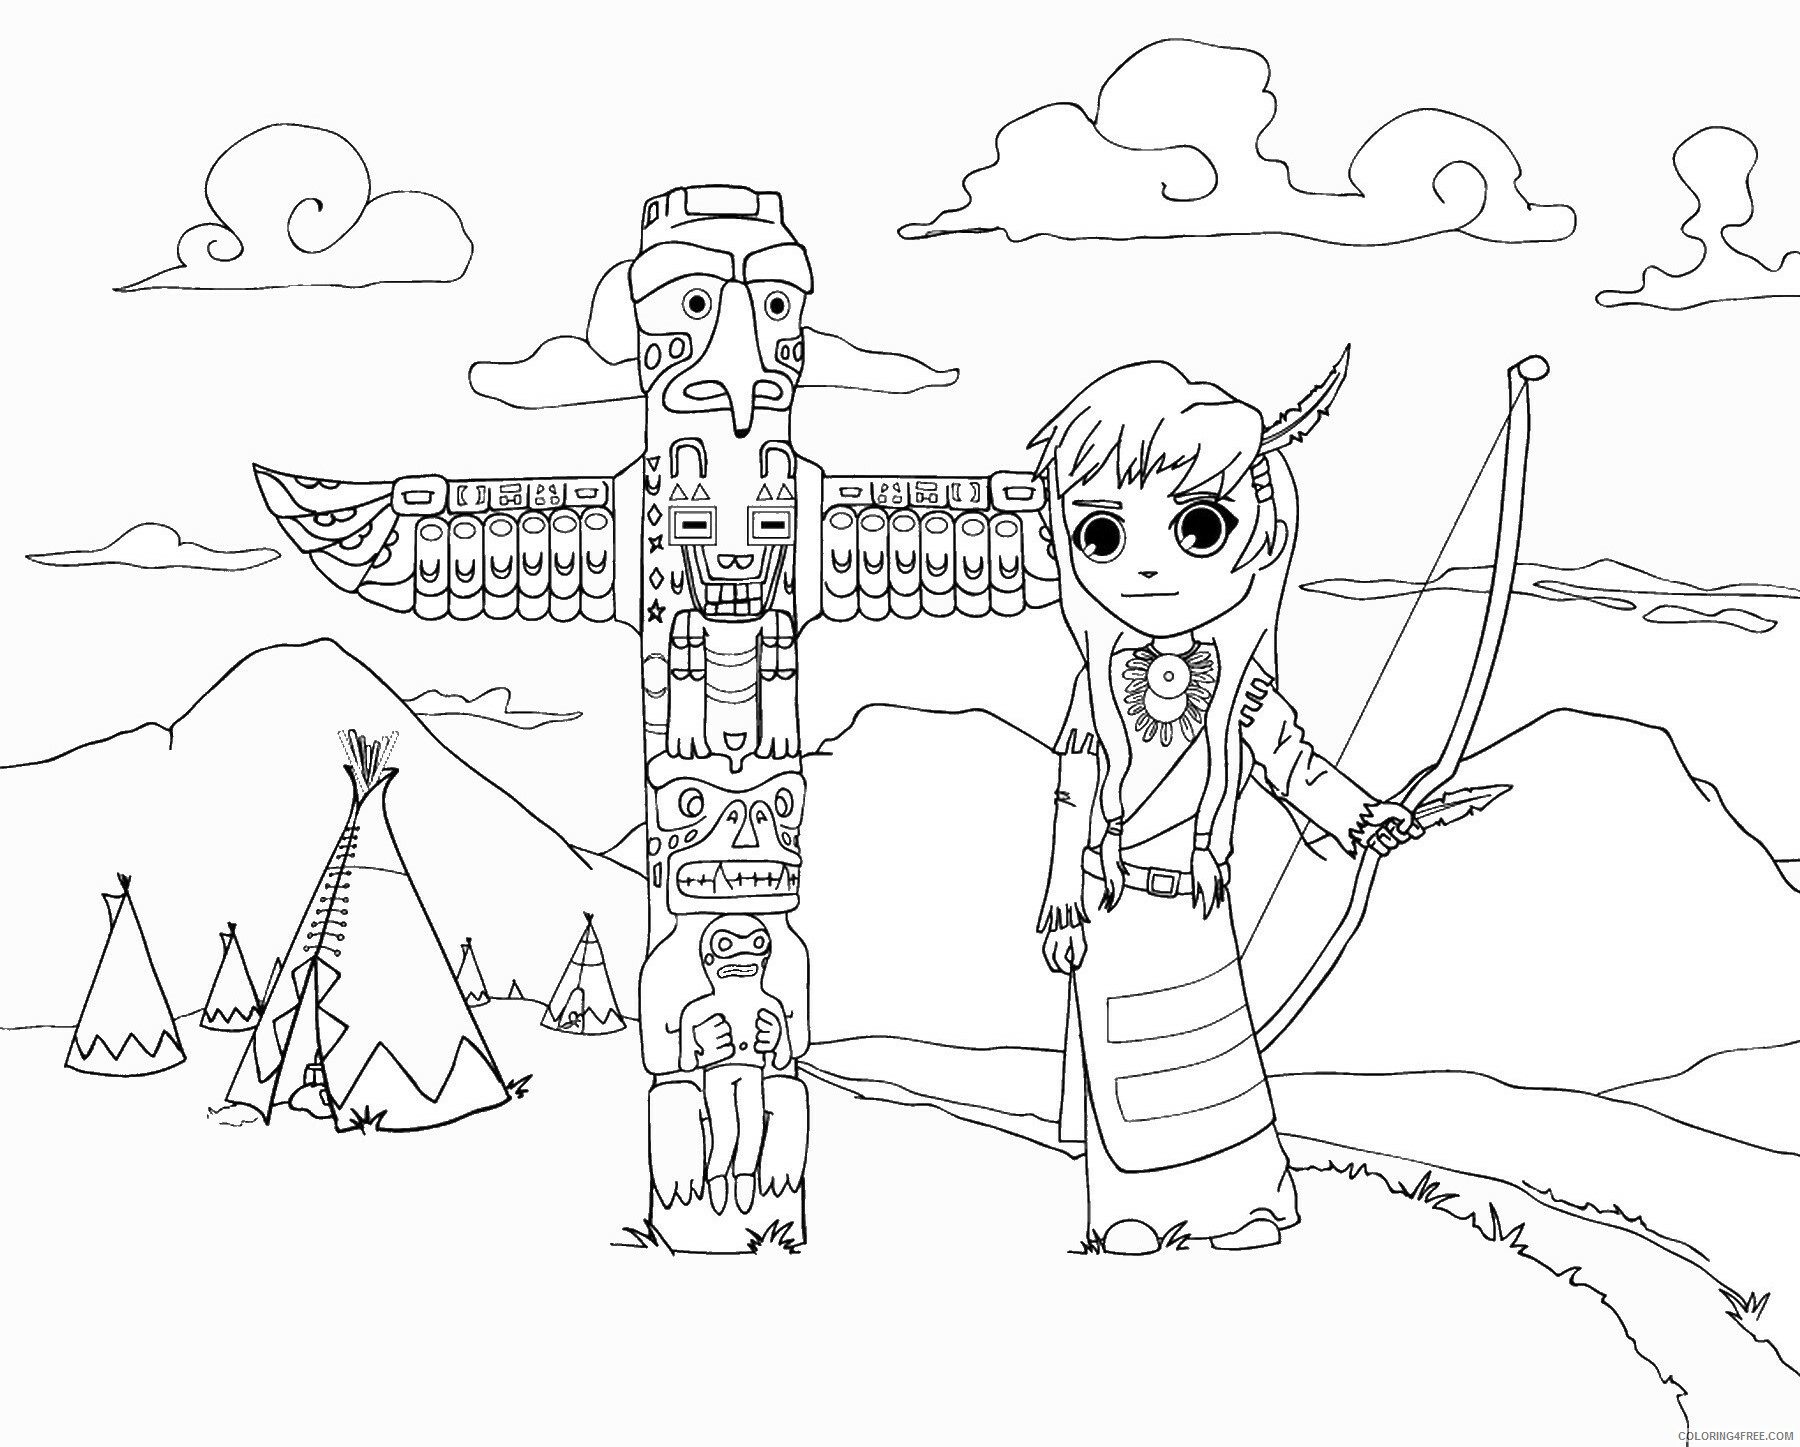 Indian Coloring Pages indians_07 Printable 2021 3545 Coloring4free